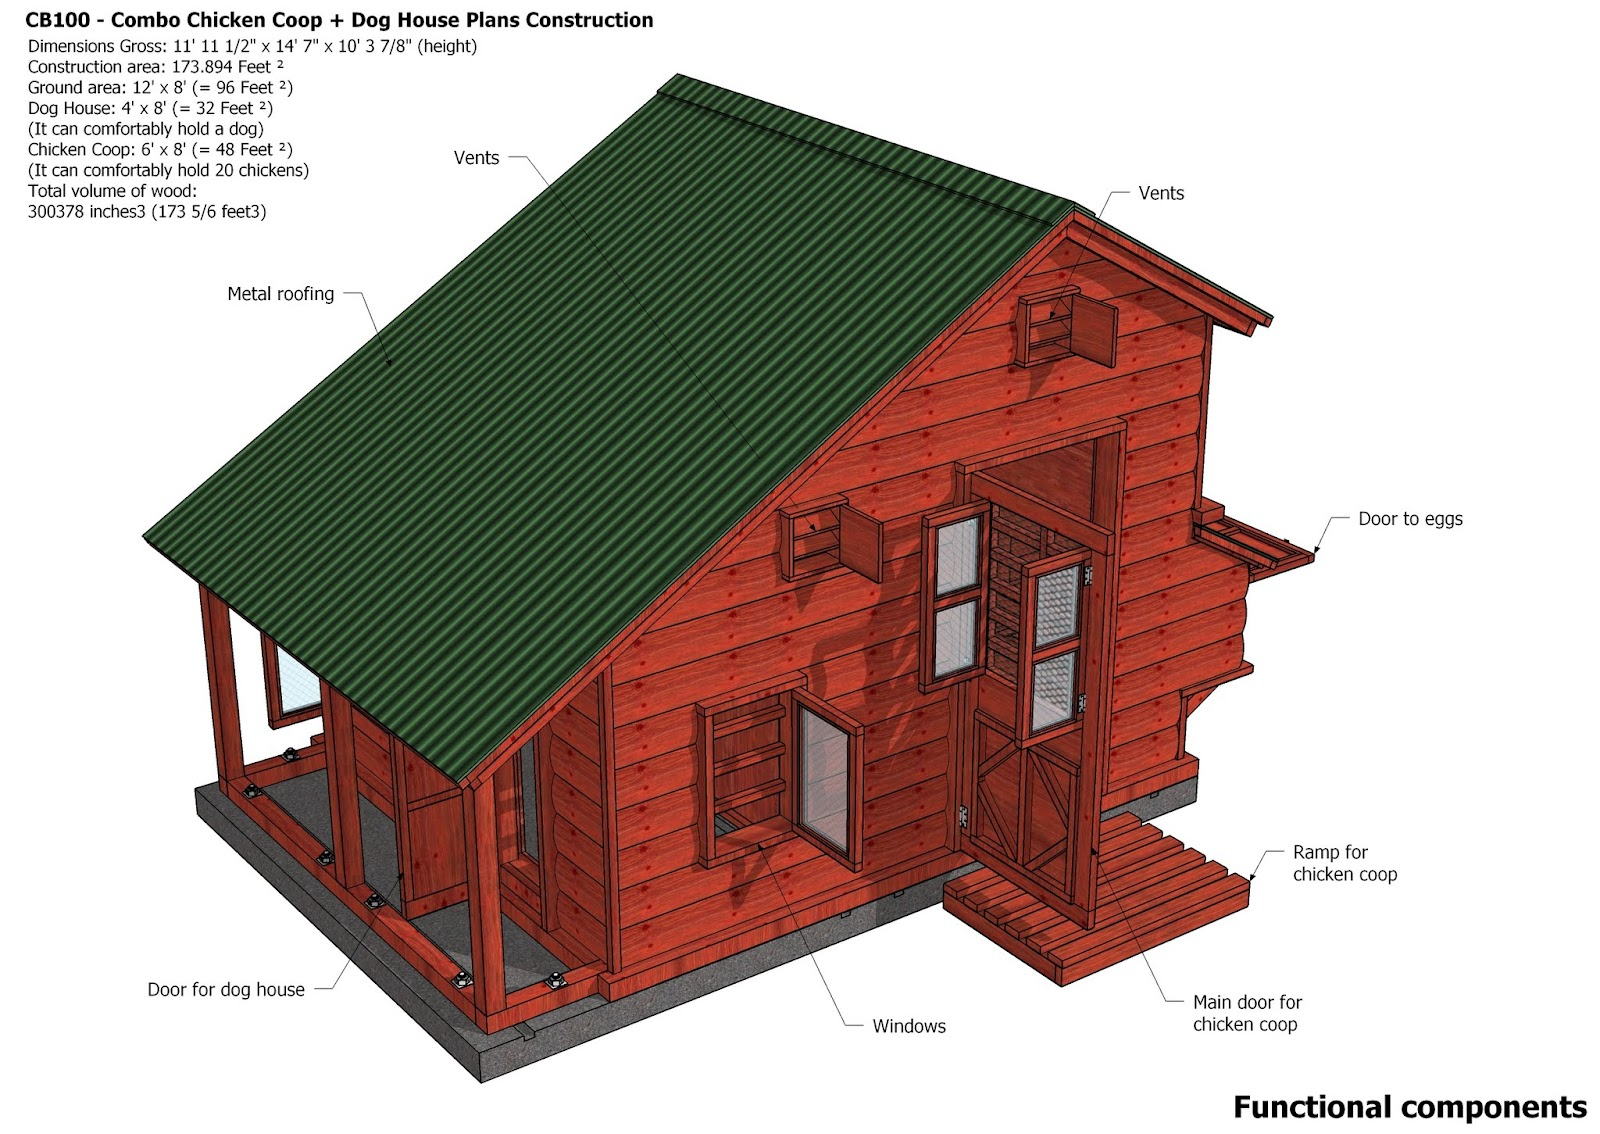 Home garden plans cb100 combo plans chicken coop for Dog house plans pdf